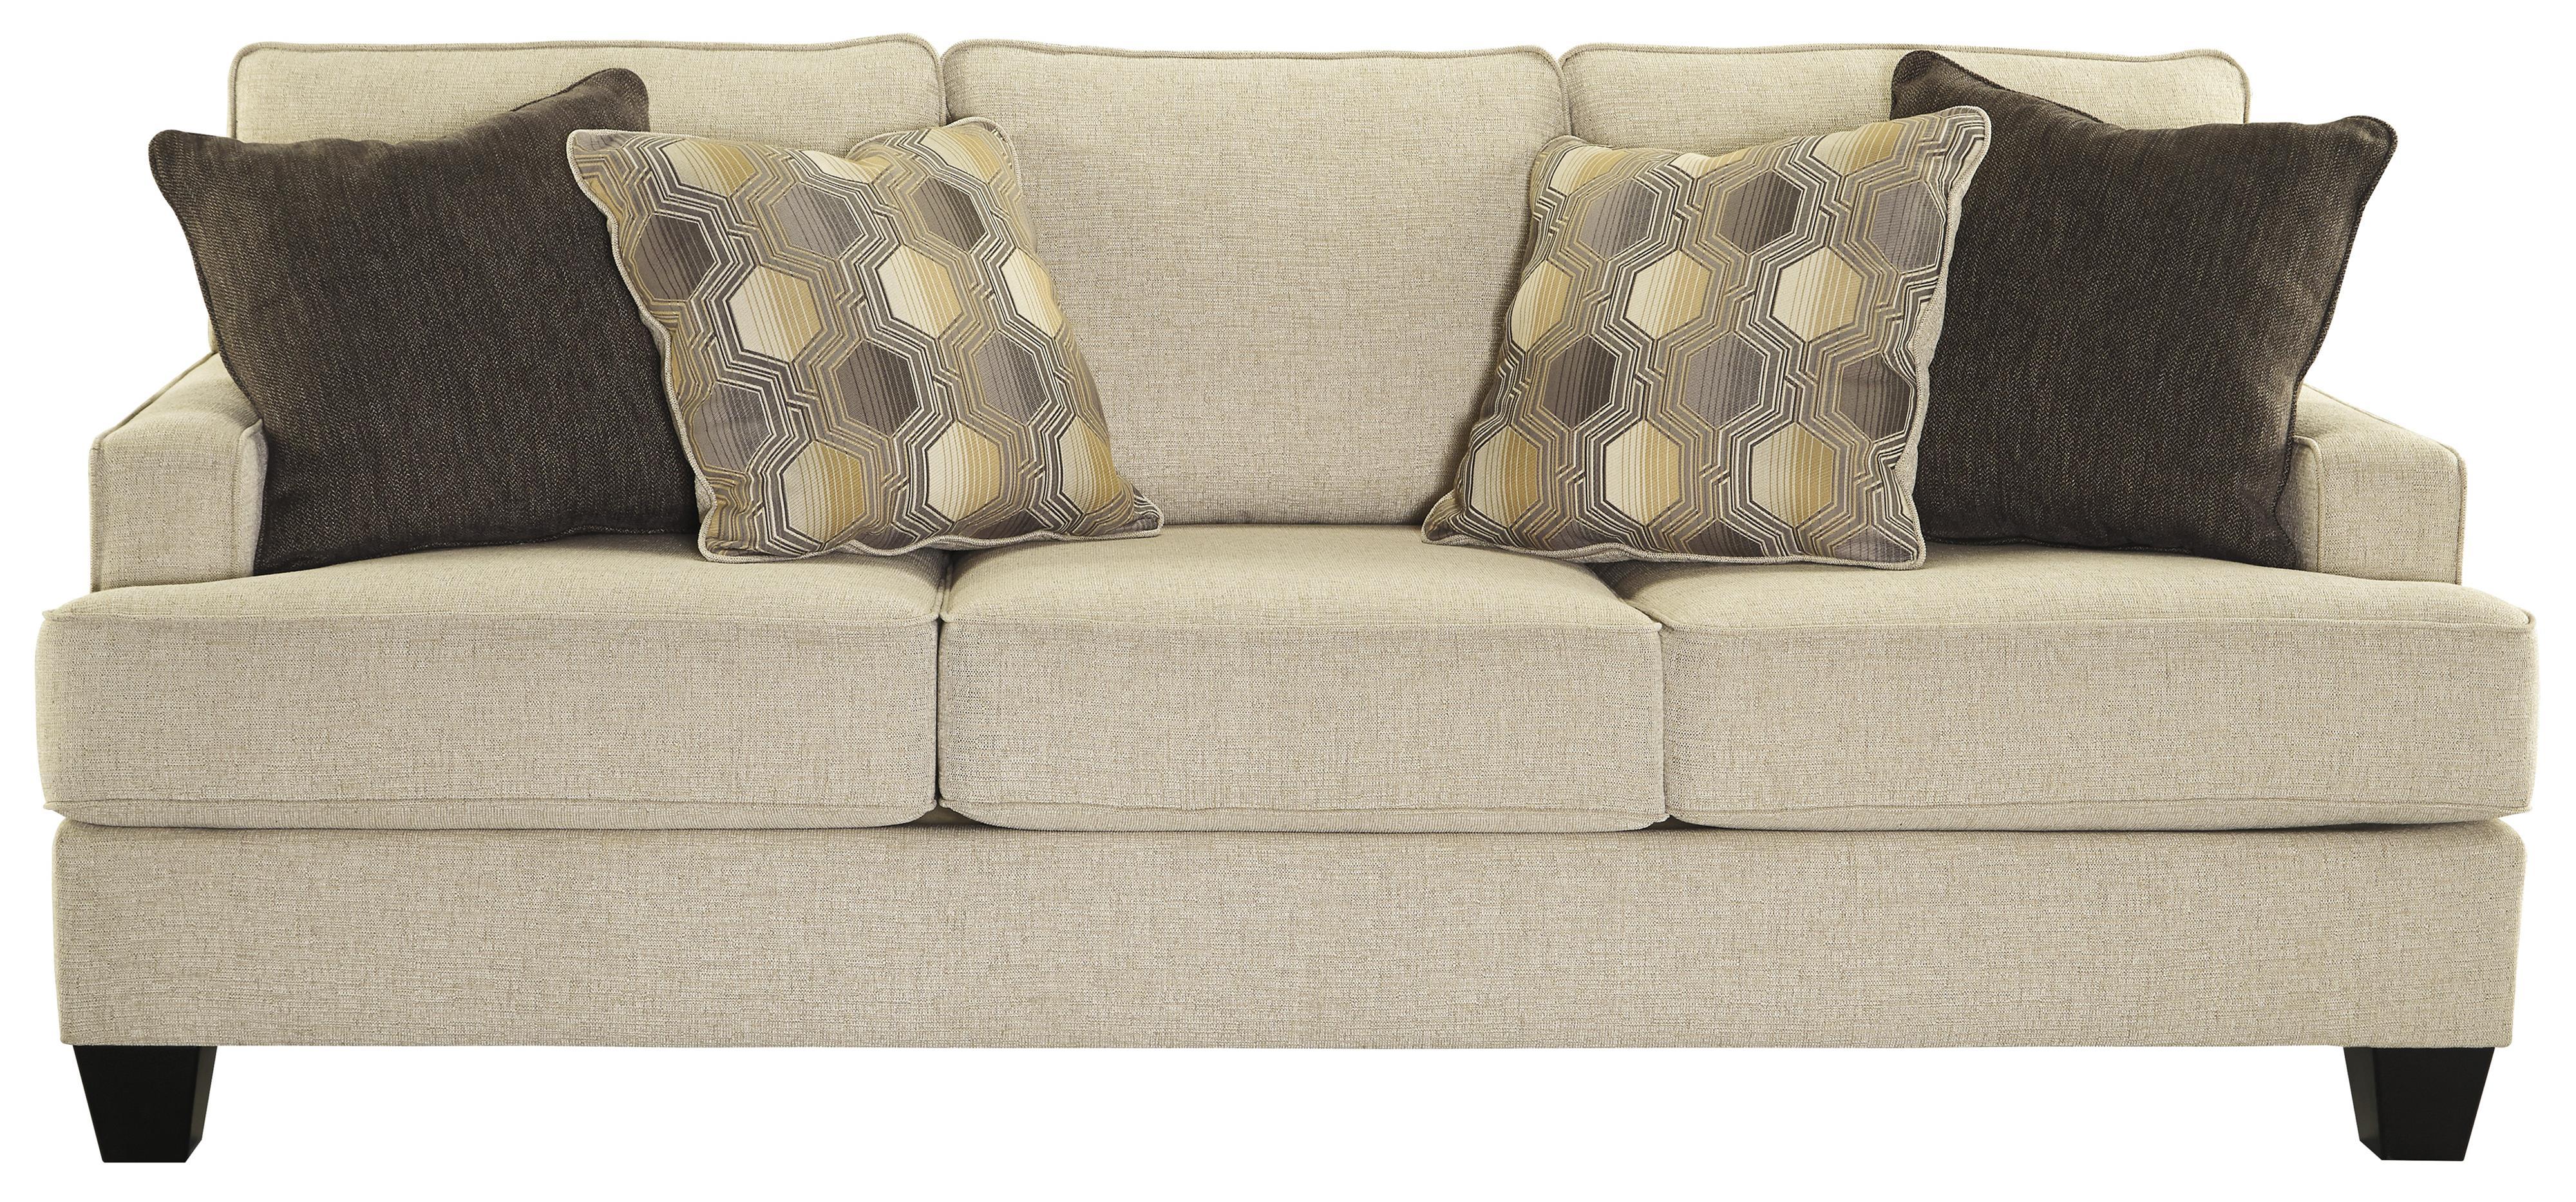 Benchcraft Brielyn Sofa with Track Arms and T Style Seat Cushions